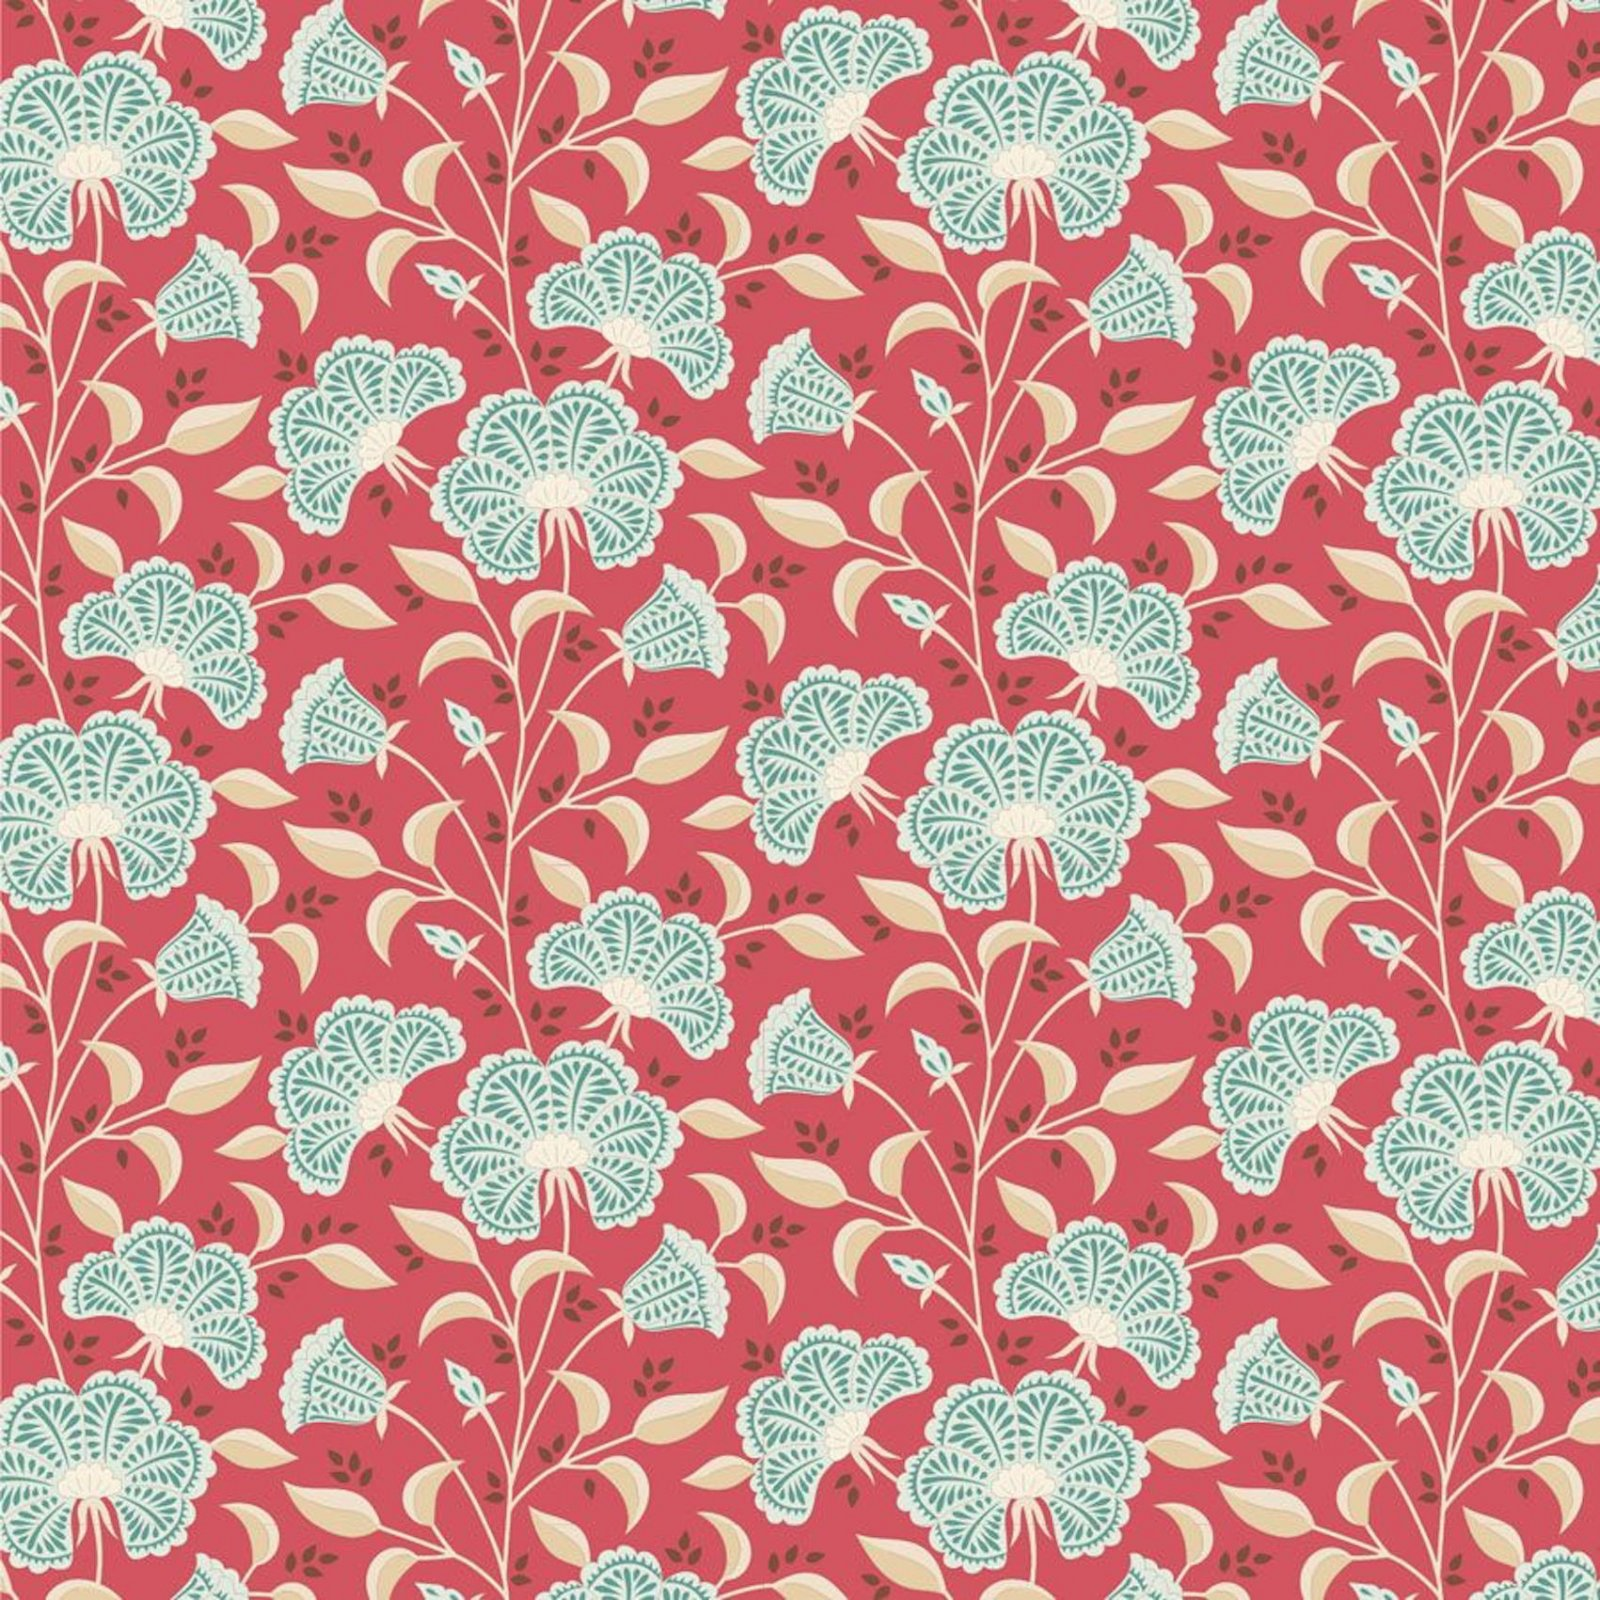 PRE-ORDER  - Tilda - Windy Days - Stormy Floral Dusty Red